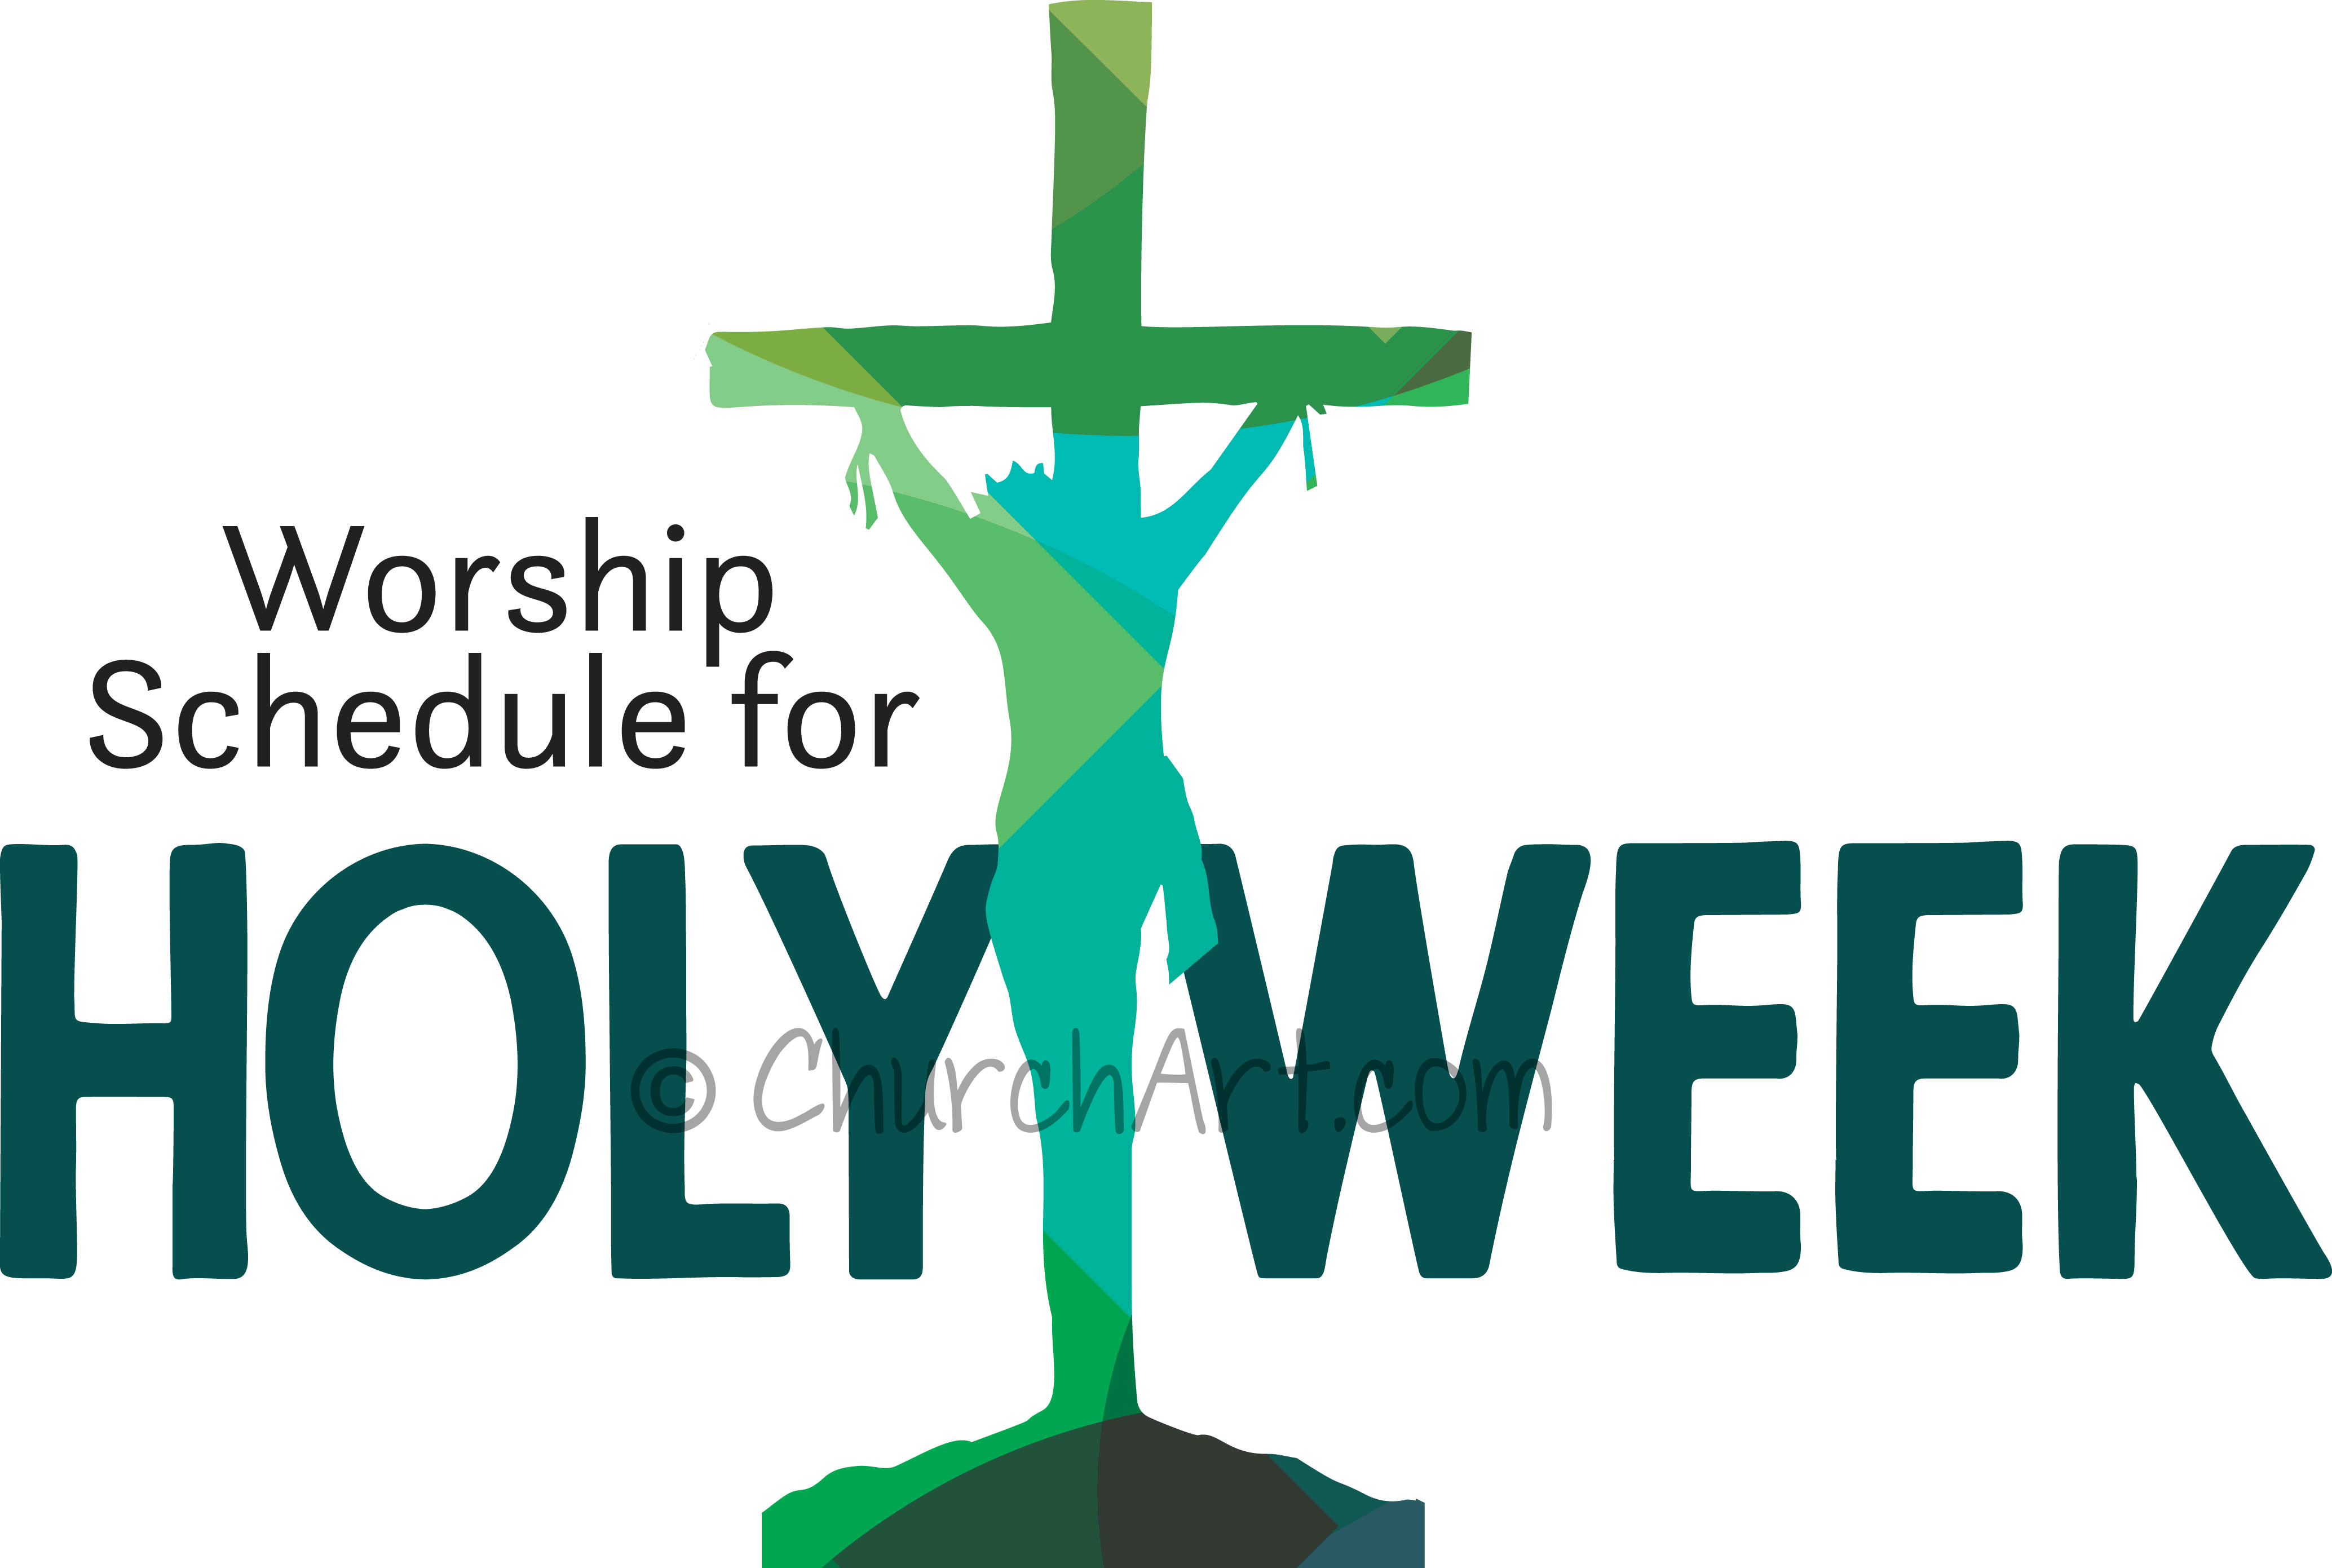 Clip art image for Holy Week worship schedule or a change in you church worship schedule for Holy Week, Easter or Lent featuring Jesus on a cross